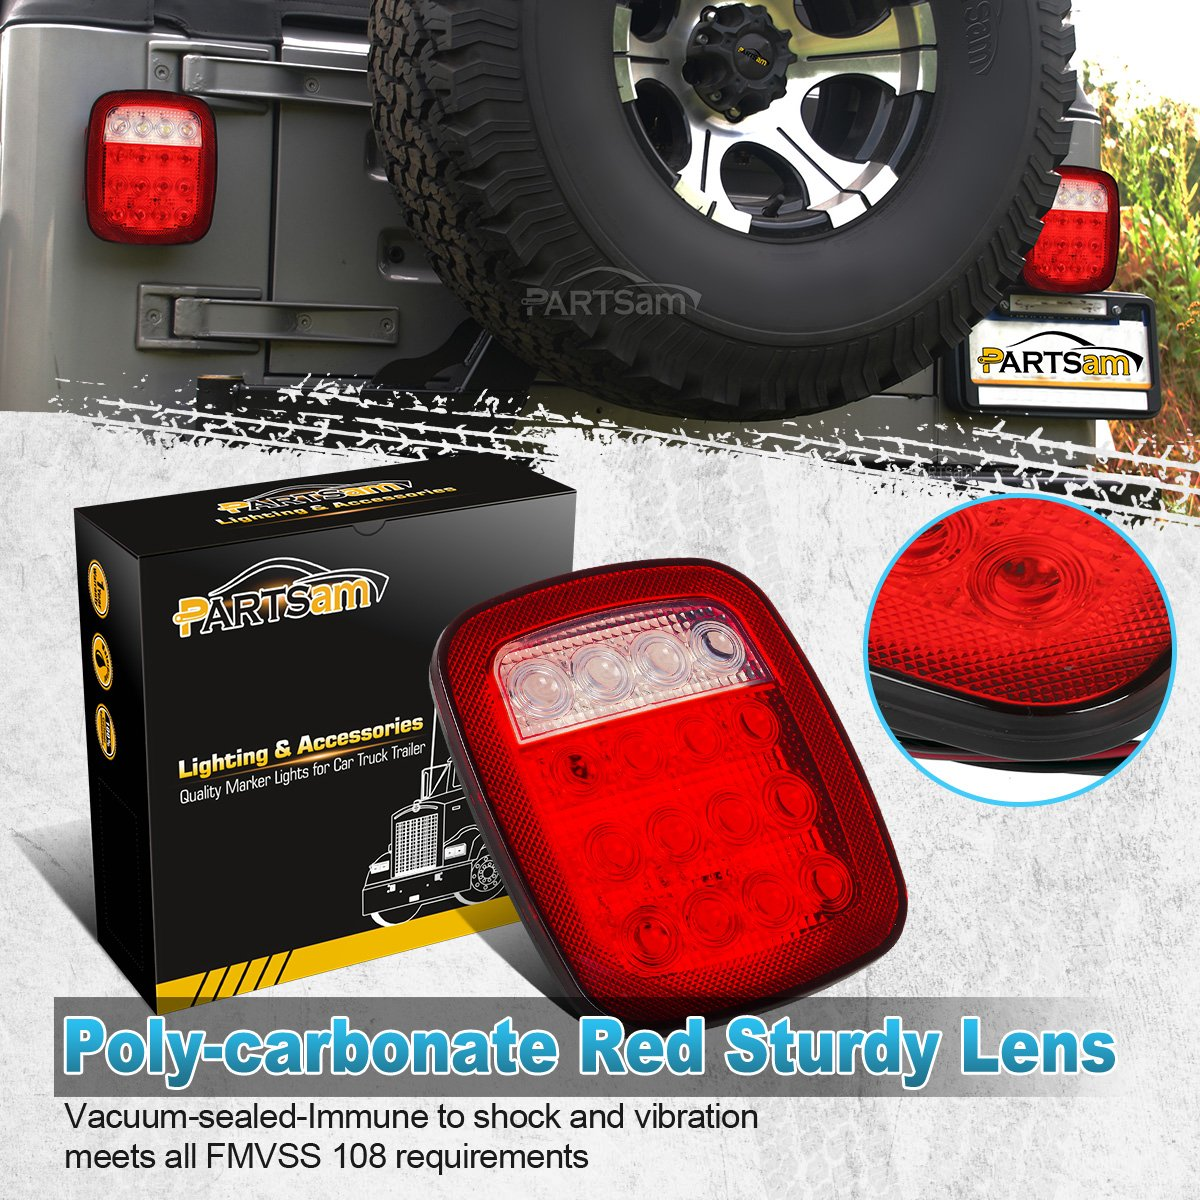 Partsam 2x Universal 16 Led Stop Tail Turn Signal Backup Jeep Jk Light Wiring Free Download Diagrams Pictures Reverse Brake Clearance Marker Lights Lamps Red White For Truck Trailer Yj Cj